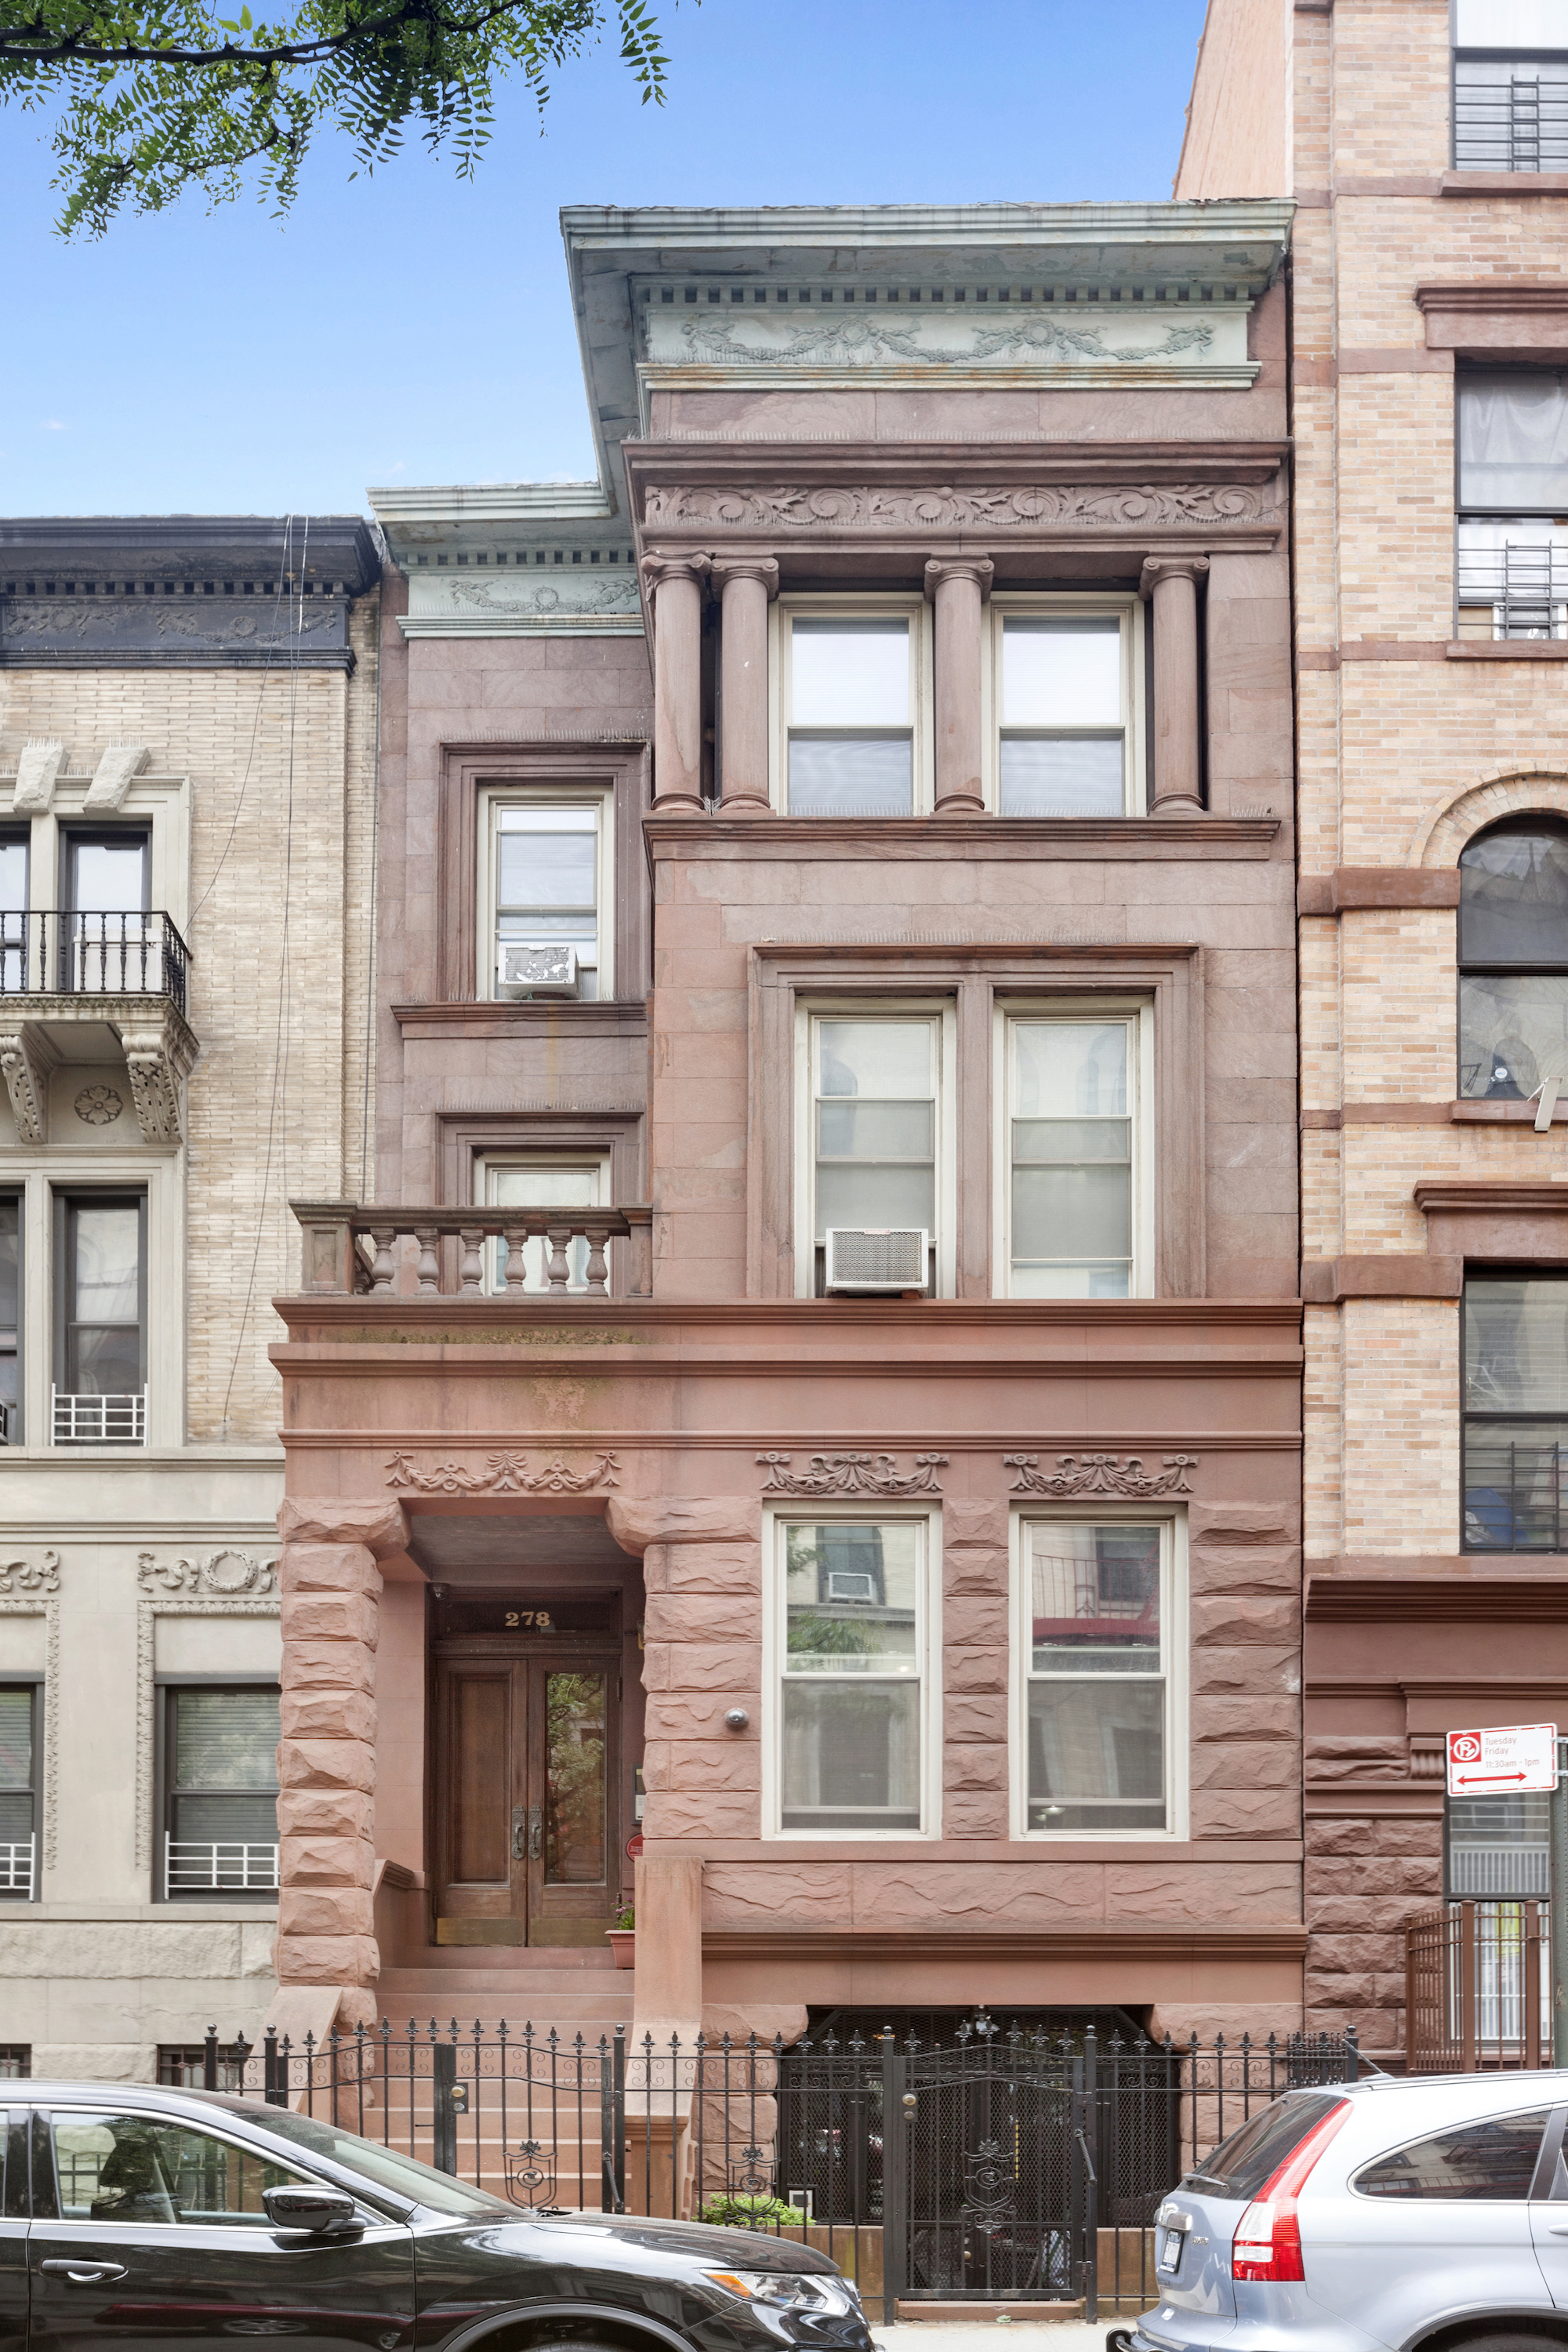 Harry houdini 39 s former harlem townhouse seeks 4 6m for Townhouses for sale in harlem